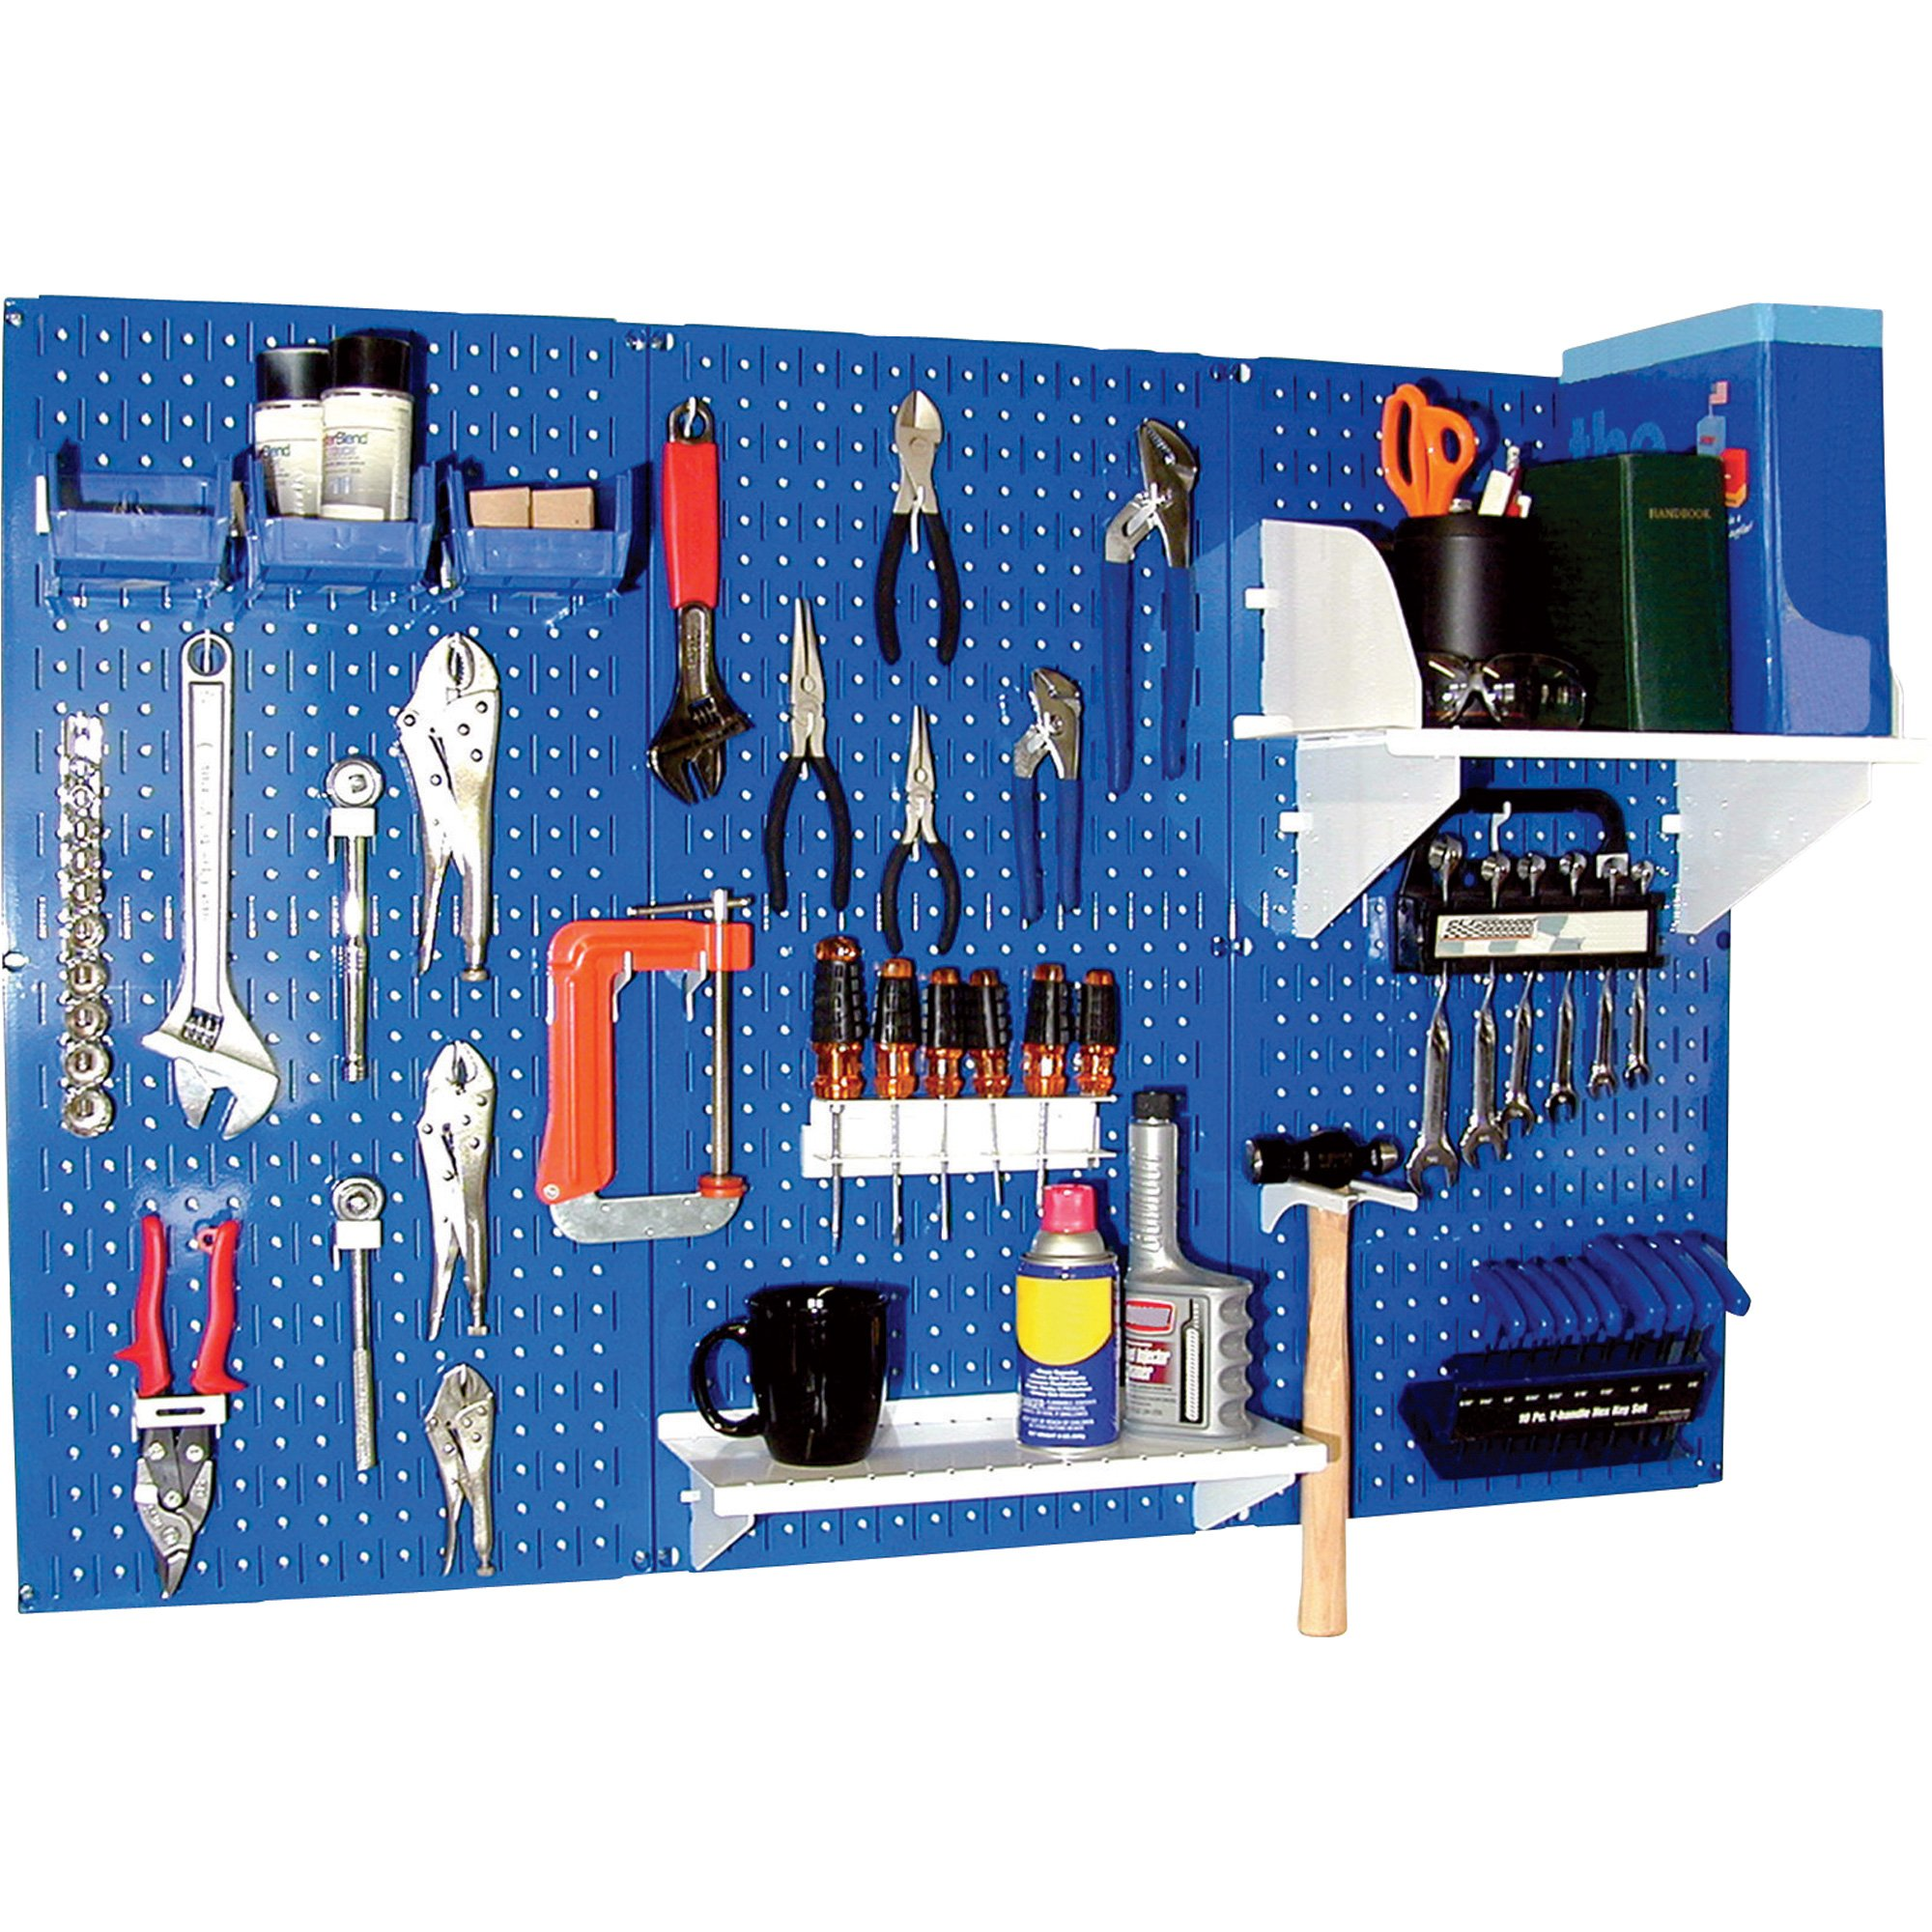 Wall Control Industrial Metal Pegboard - Blue, Three 16in. x 32in. Panels, Model# 35-P-3248BU